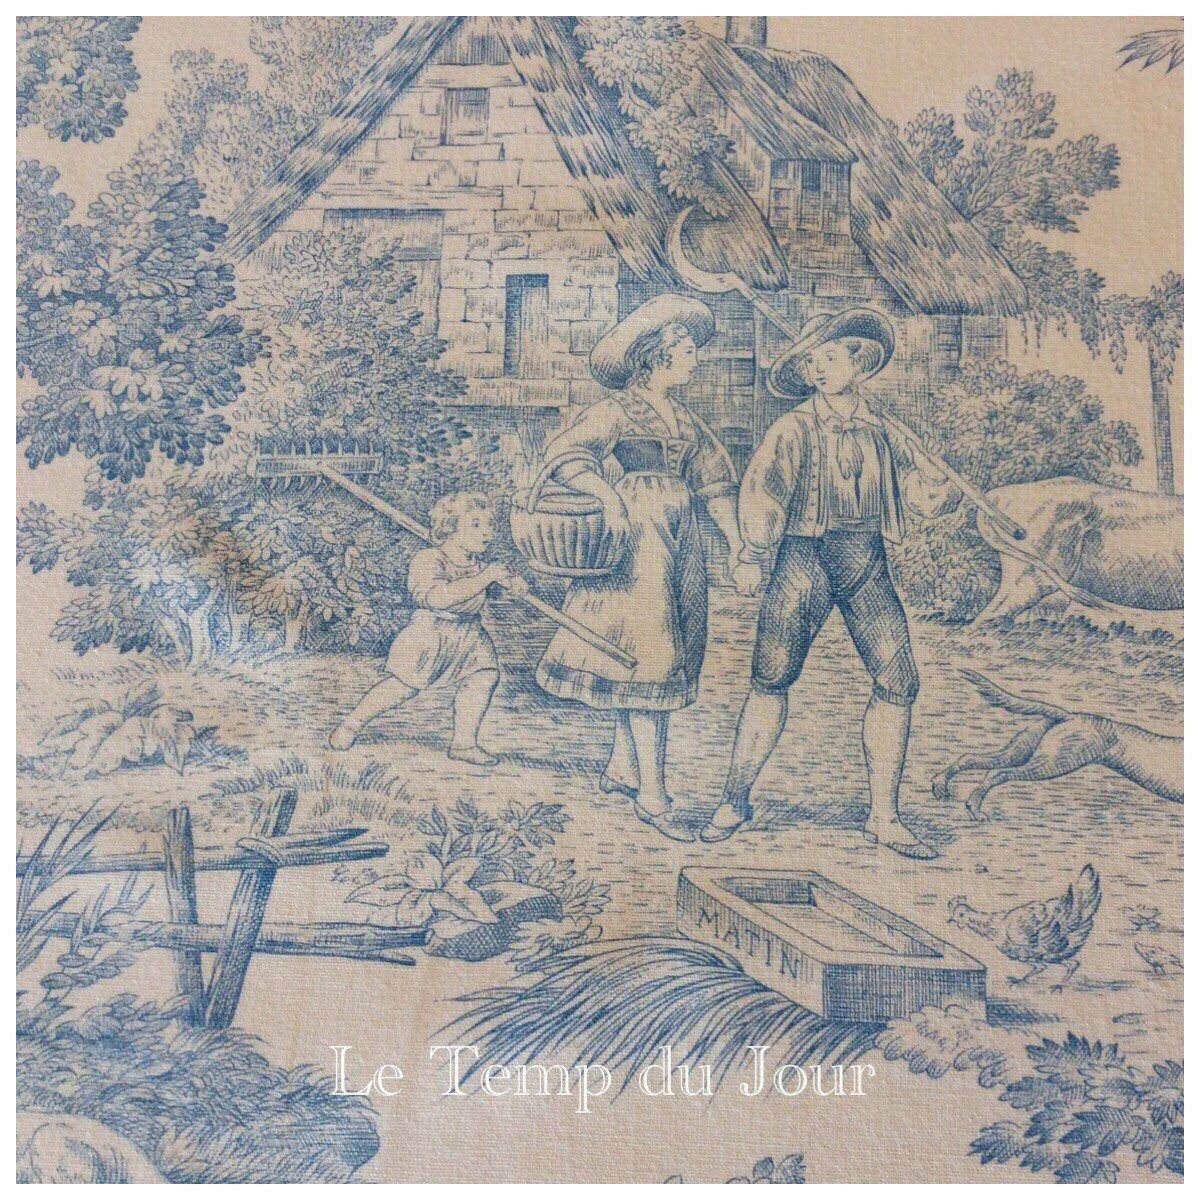 Französischer Landhausstil Stoffe Le Temp Du Jour French Toile De Jouy Light Blue On Cream